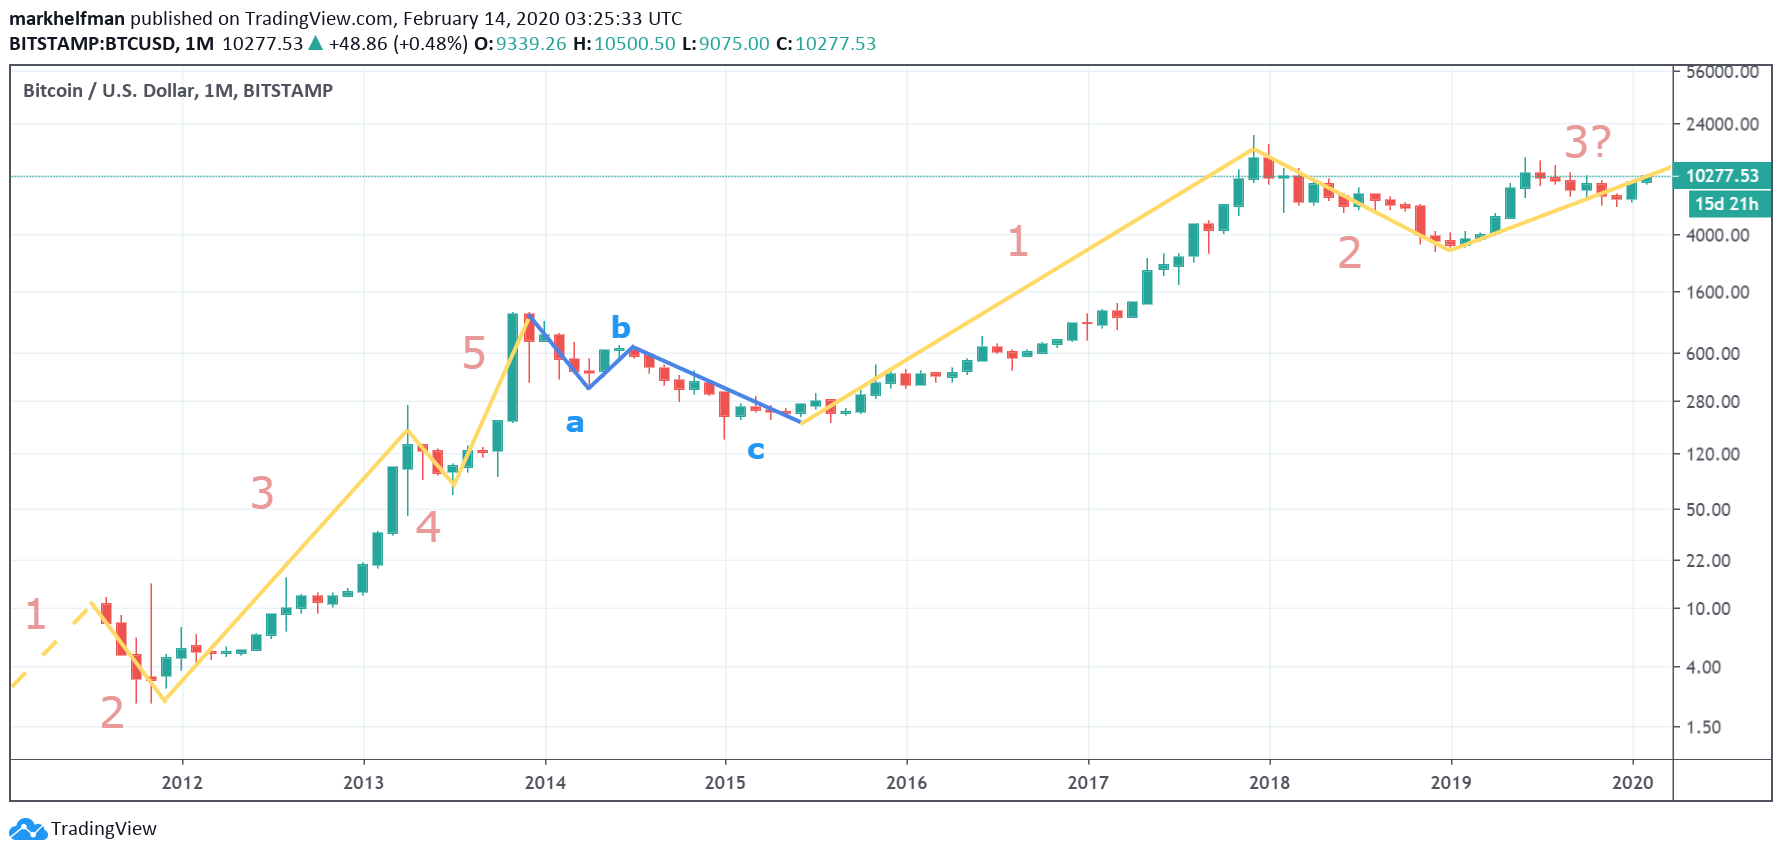 Trading chart showing two Elliott Wave cycles between pre-2011 to February 2020.